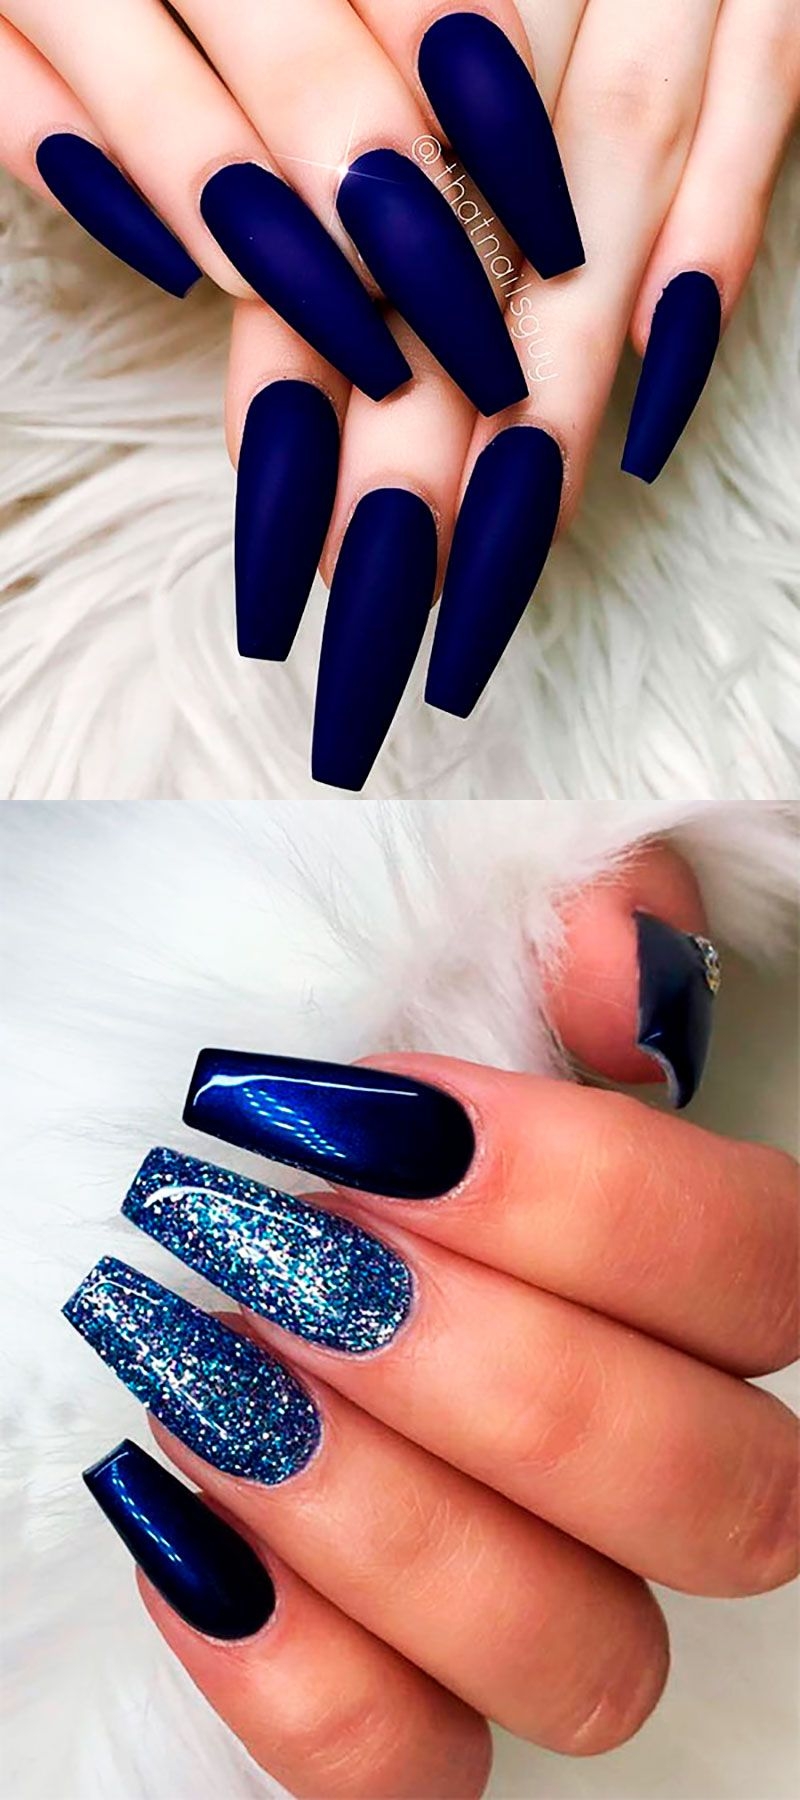 120 Best Coffin Nails Ideas That Suit Everyone Blue Glitter Nails Shiny Nails Designs Blue Coffin Nails